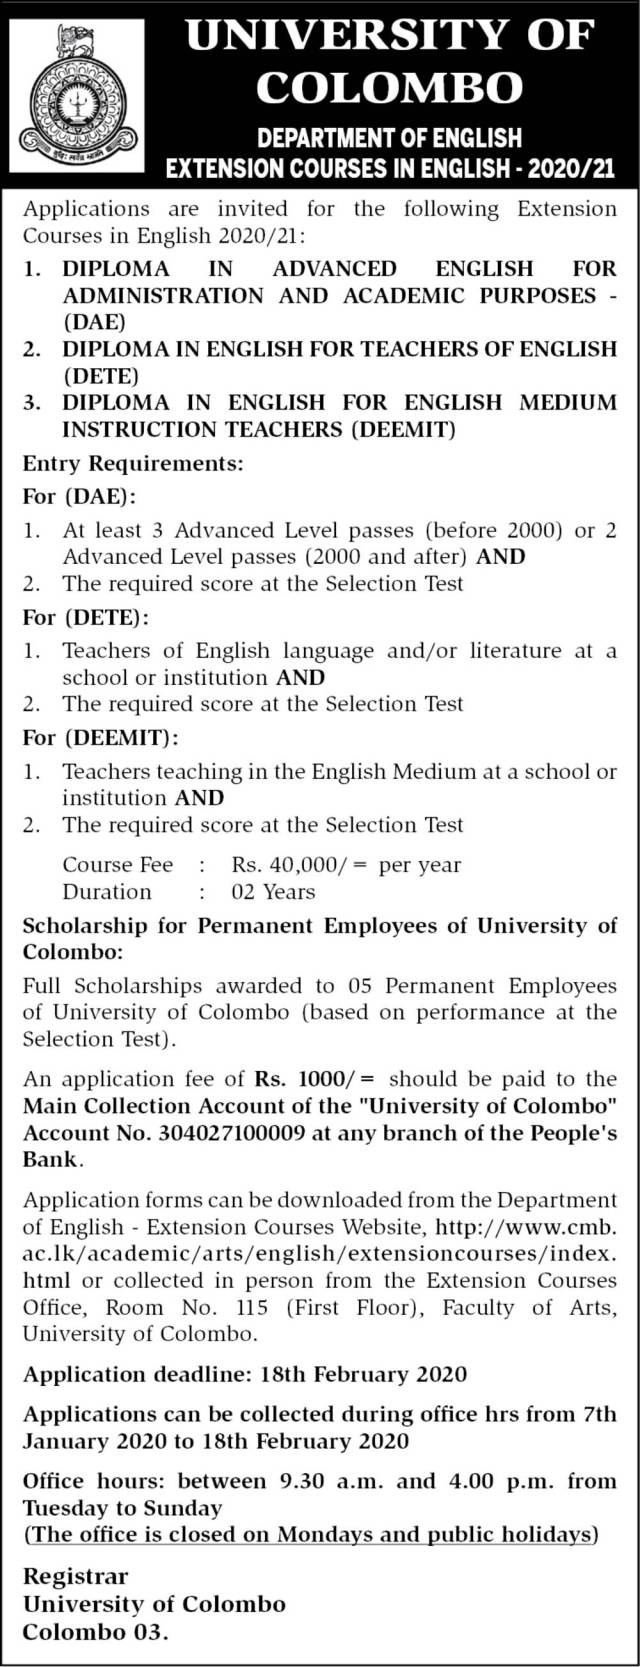 Extension Courses in English - Department of English - University of Colombo